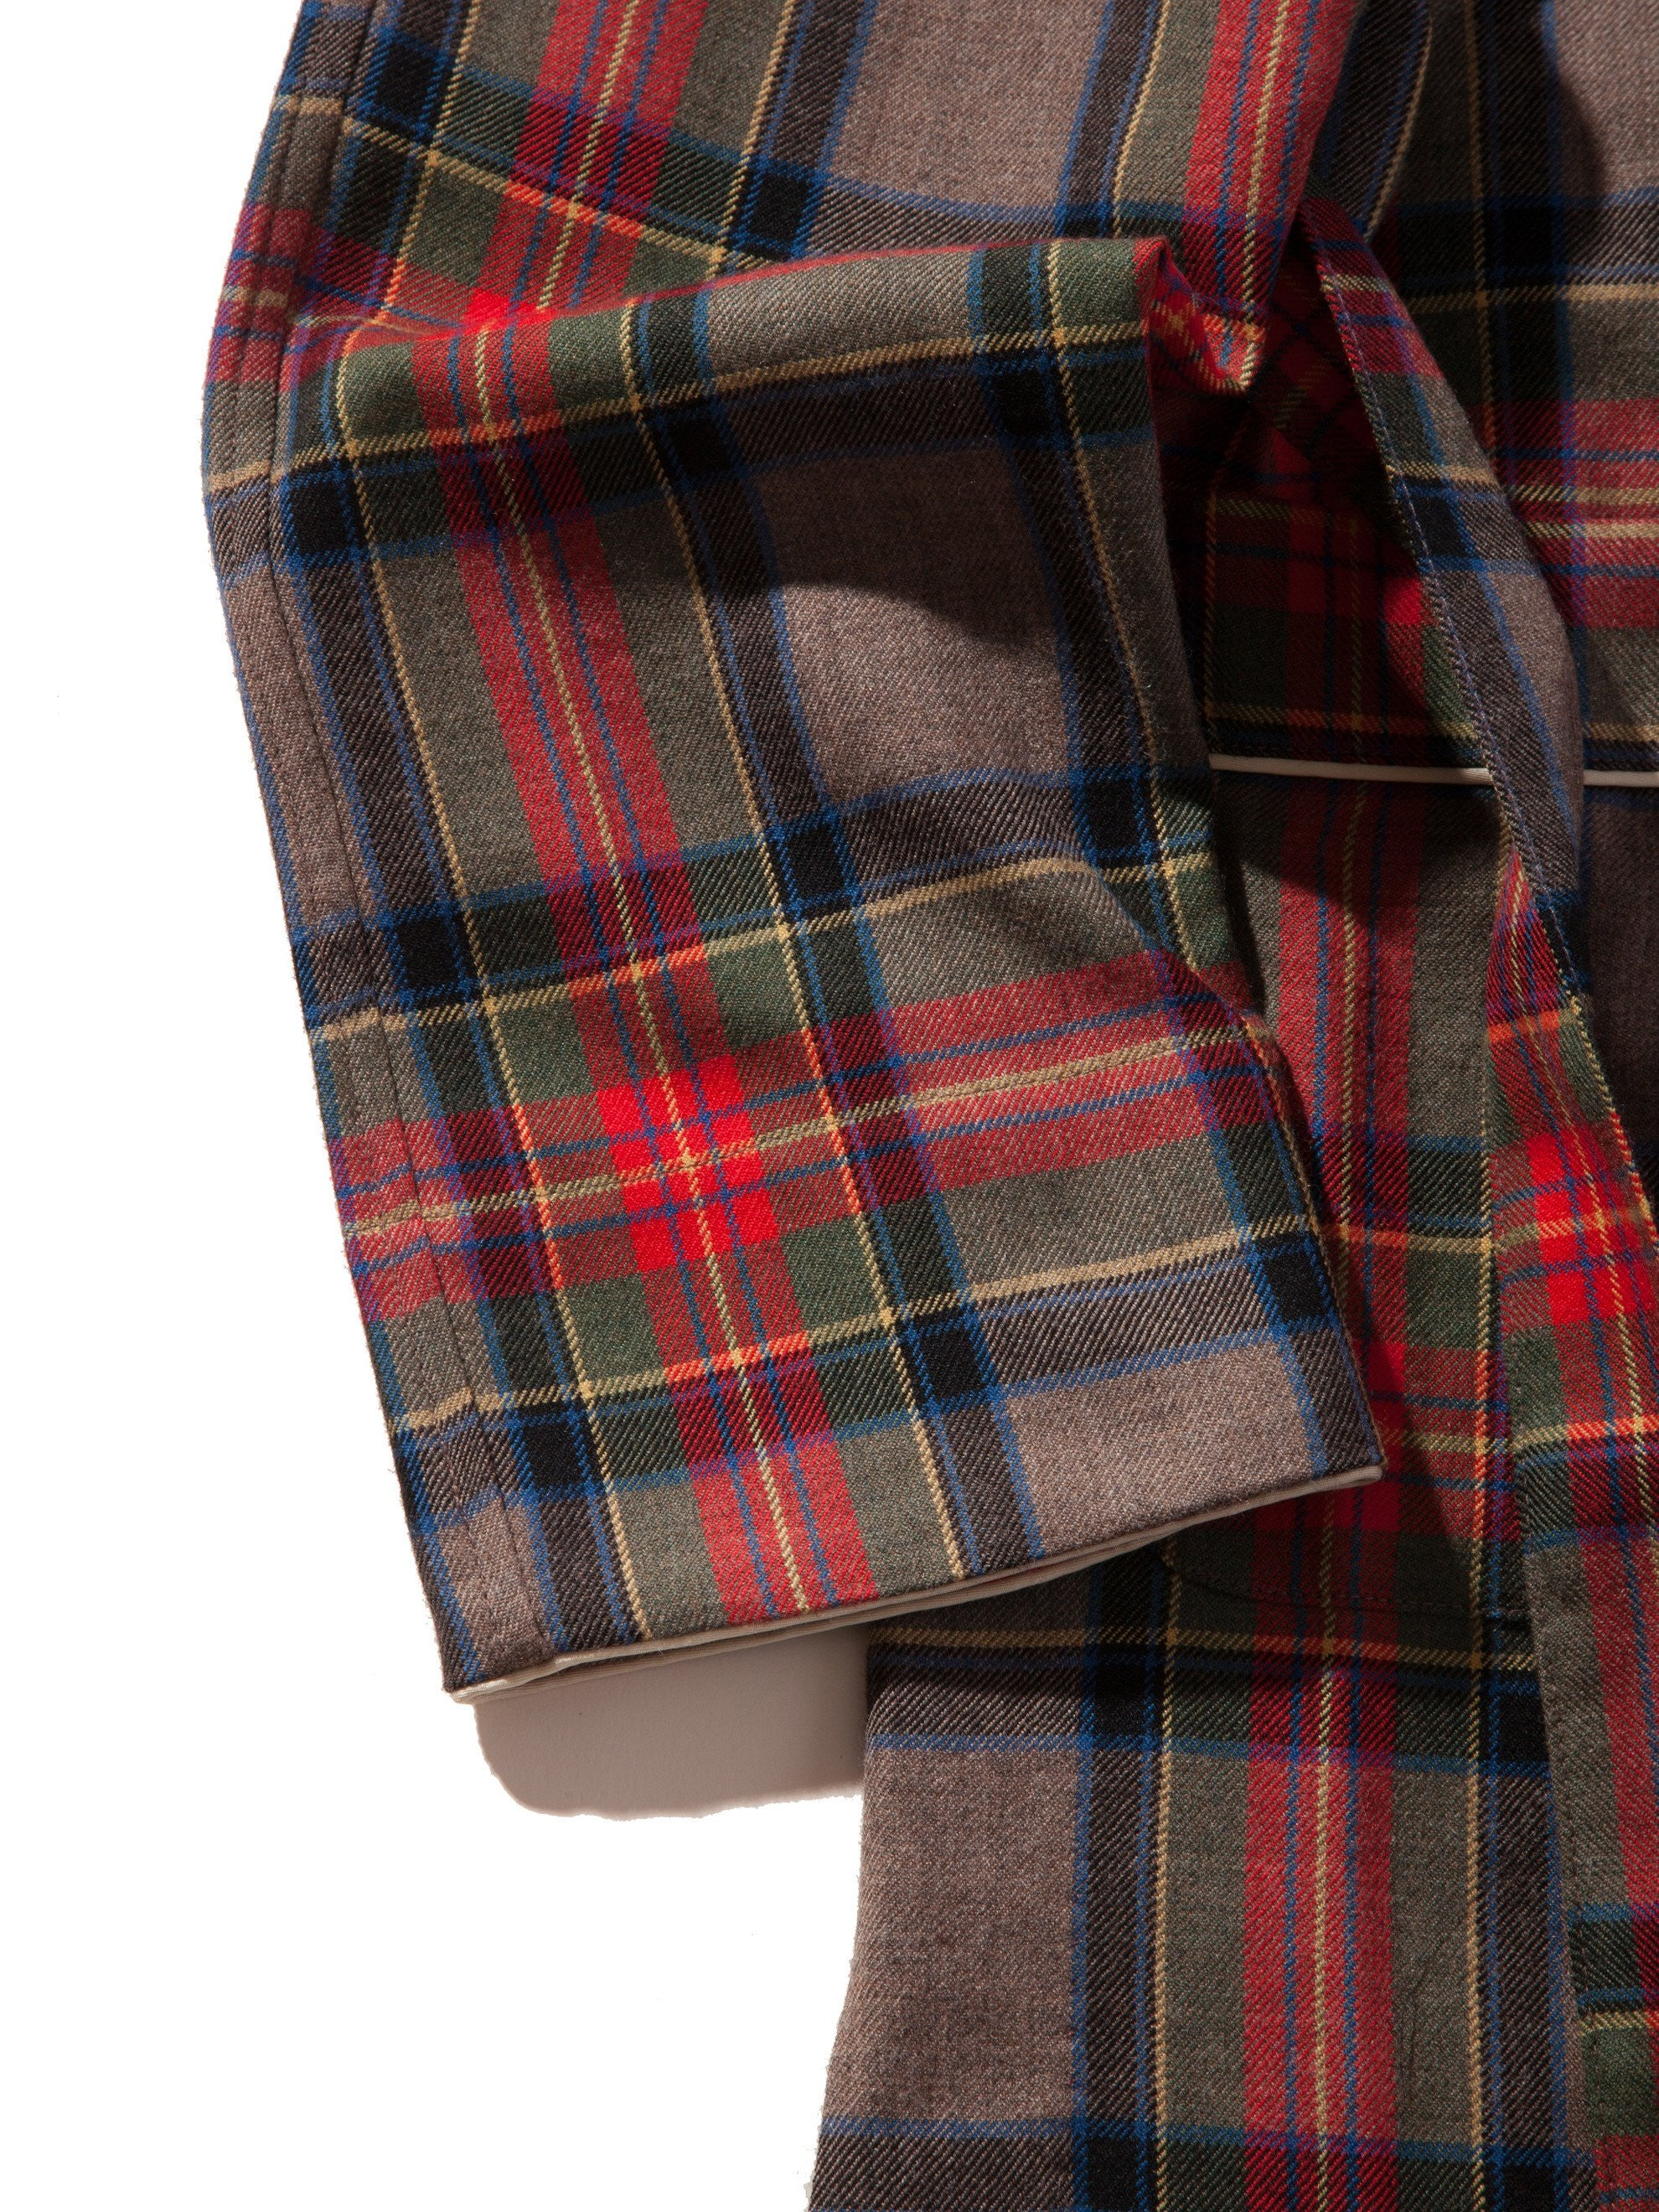 Red/Brown Plaid Wool Robe 9